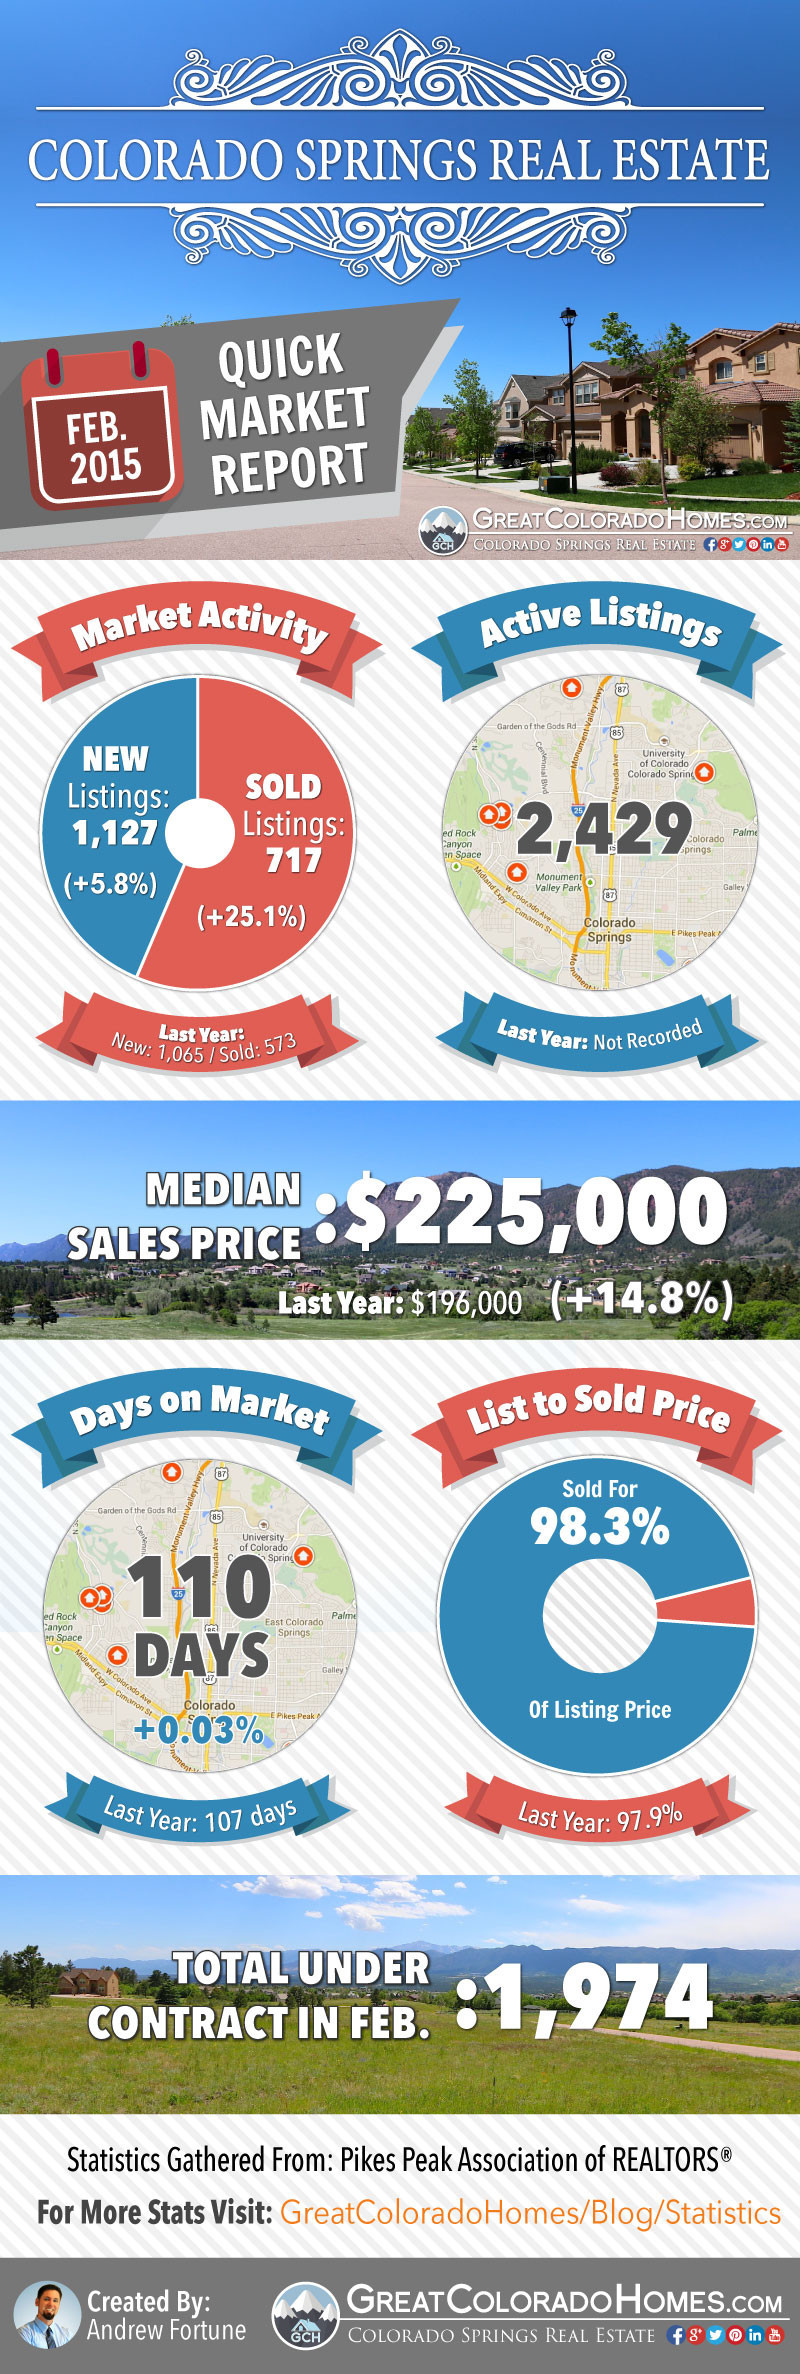 January 2015 Colorado Springs Real Estate Market Report